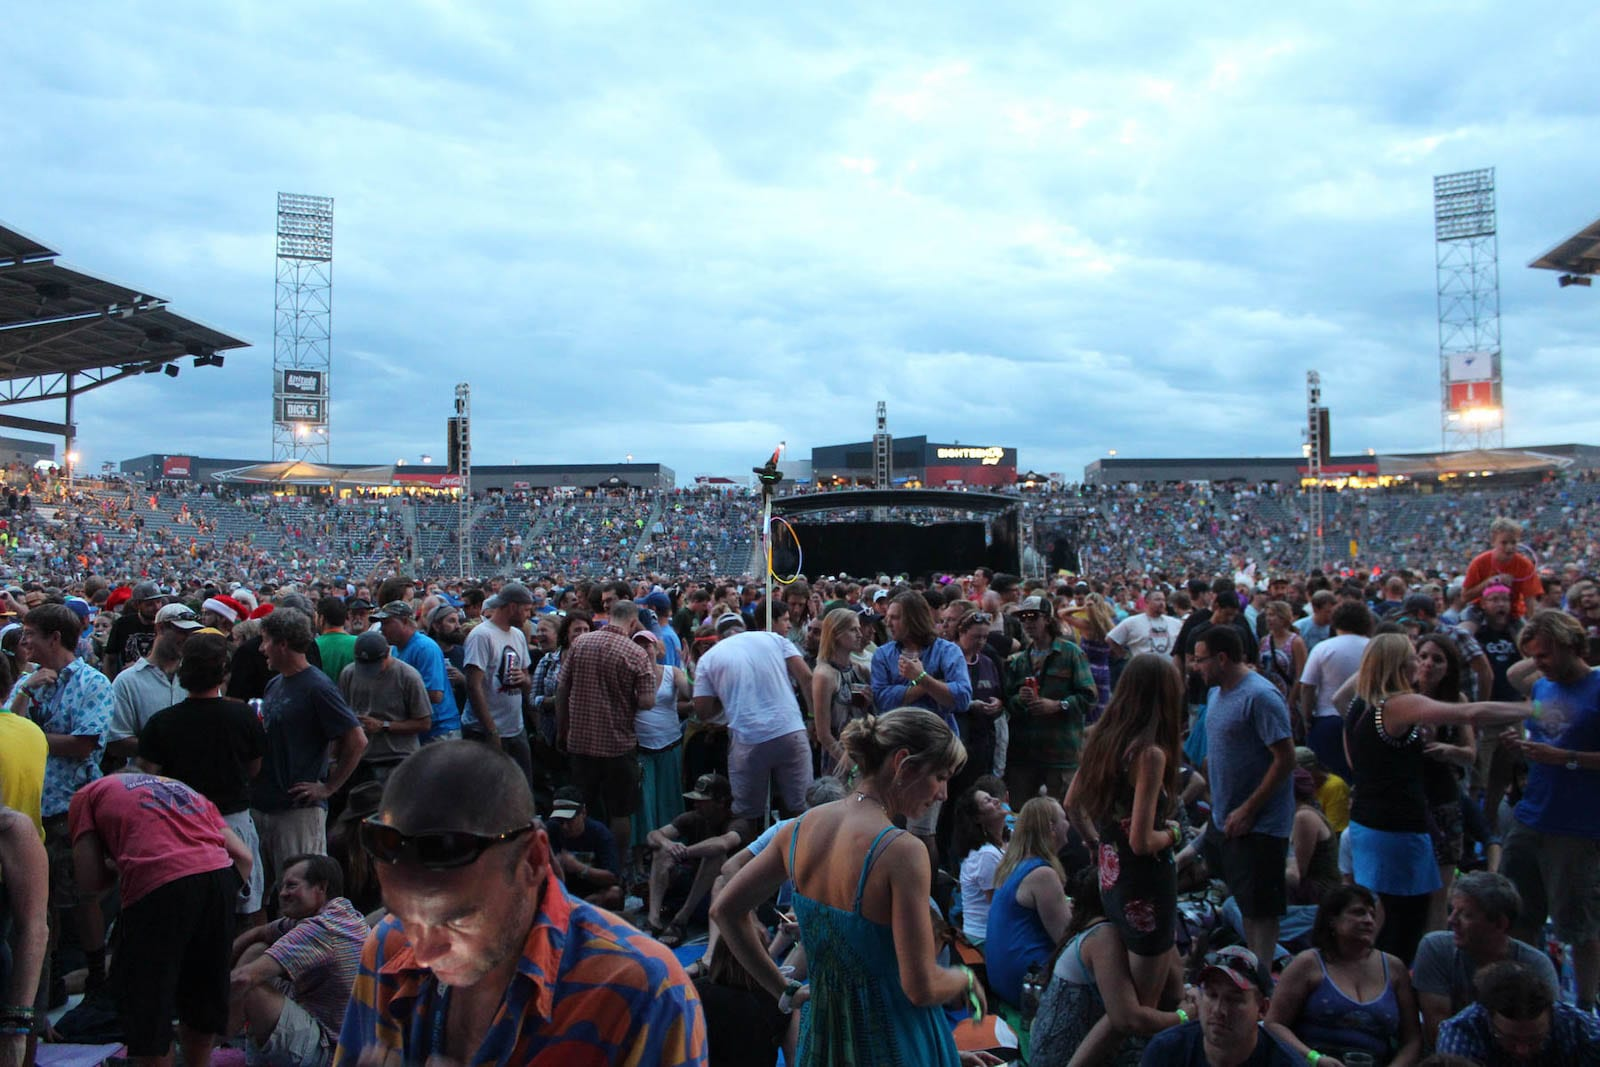 Dick's Sporting Goods Park Commerce City CO Phish Concert